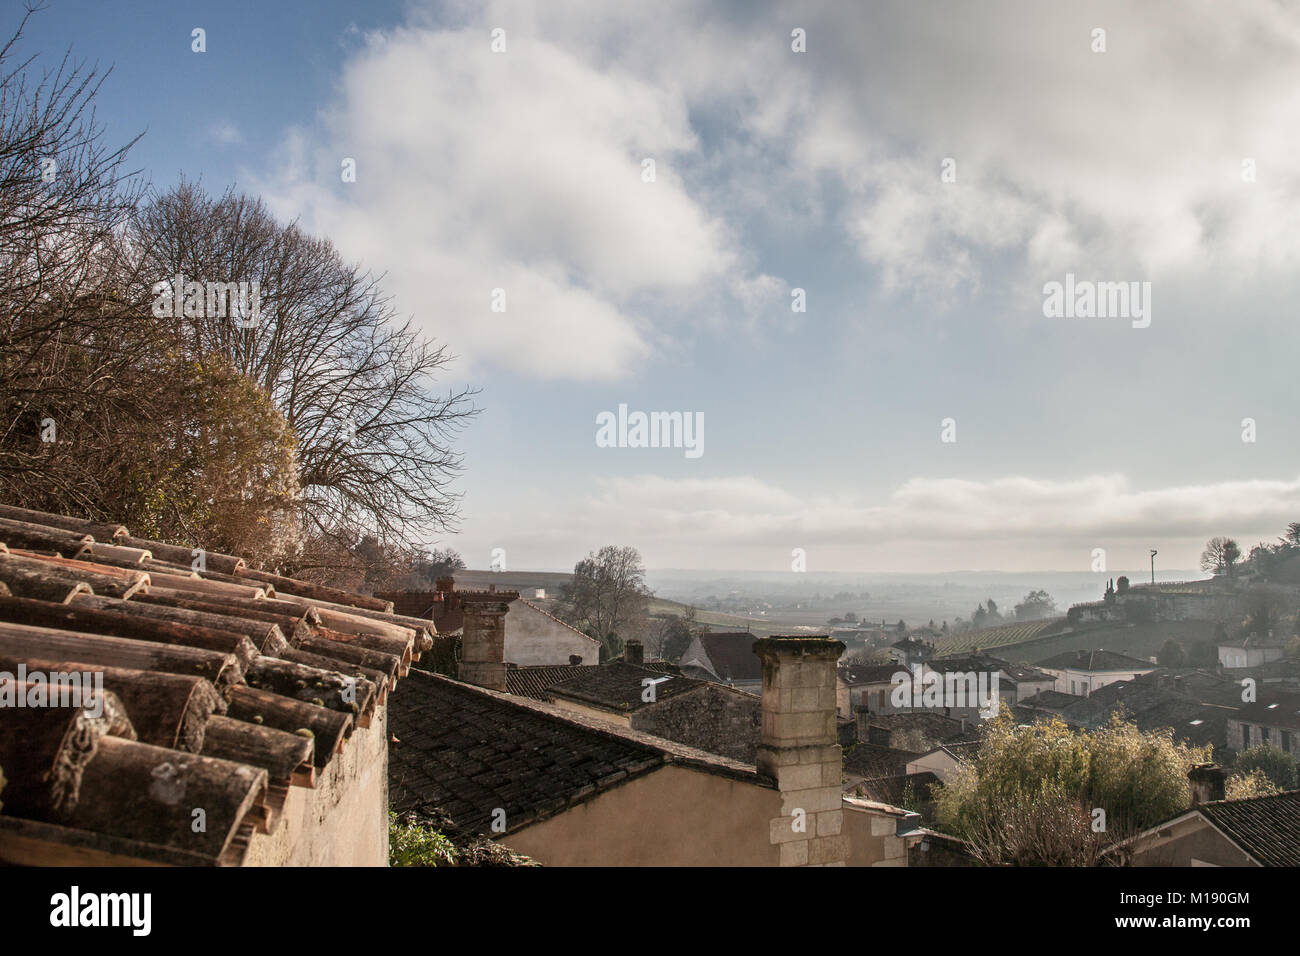 Panorama of the medieval city of Saint Emilion, France with the wineyards in background, during a sunny afternoon. - Stock Image